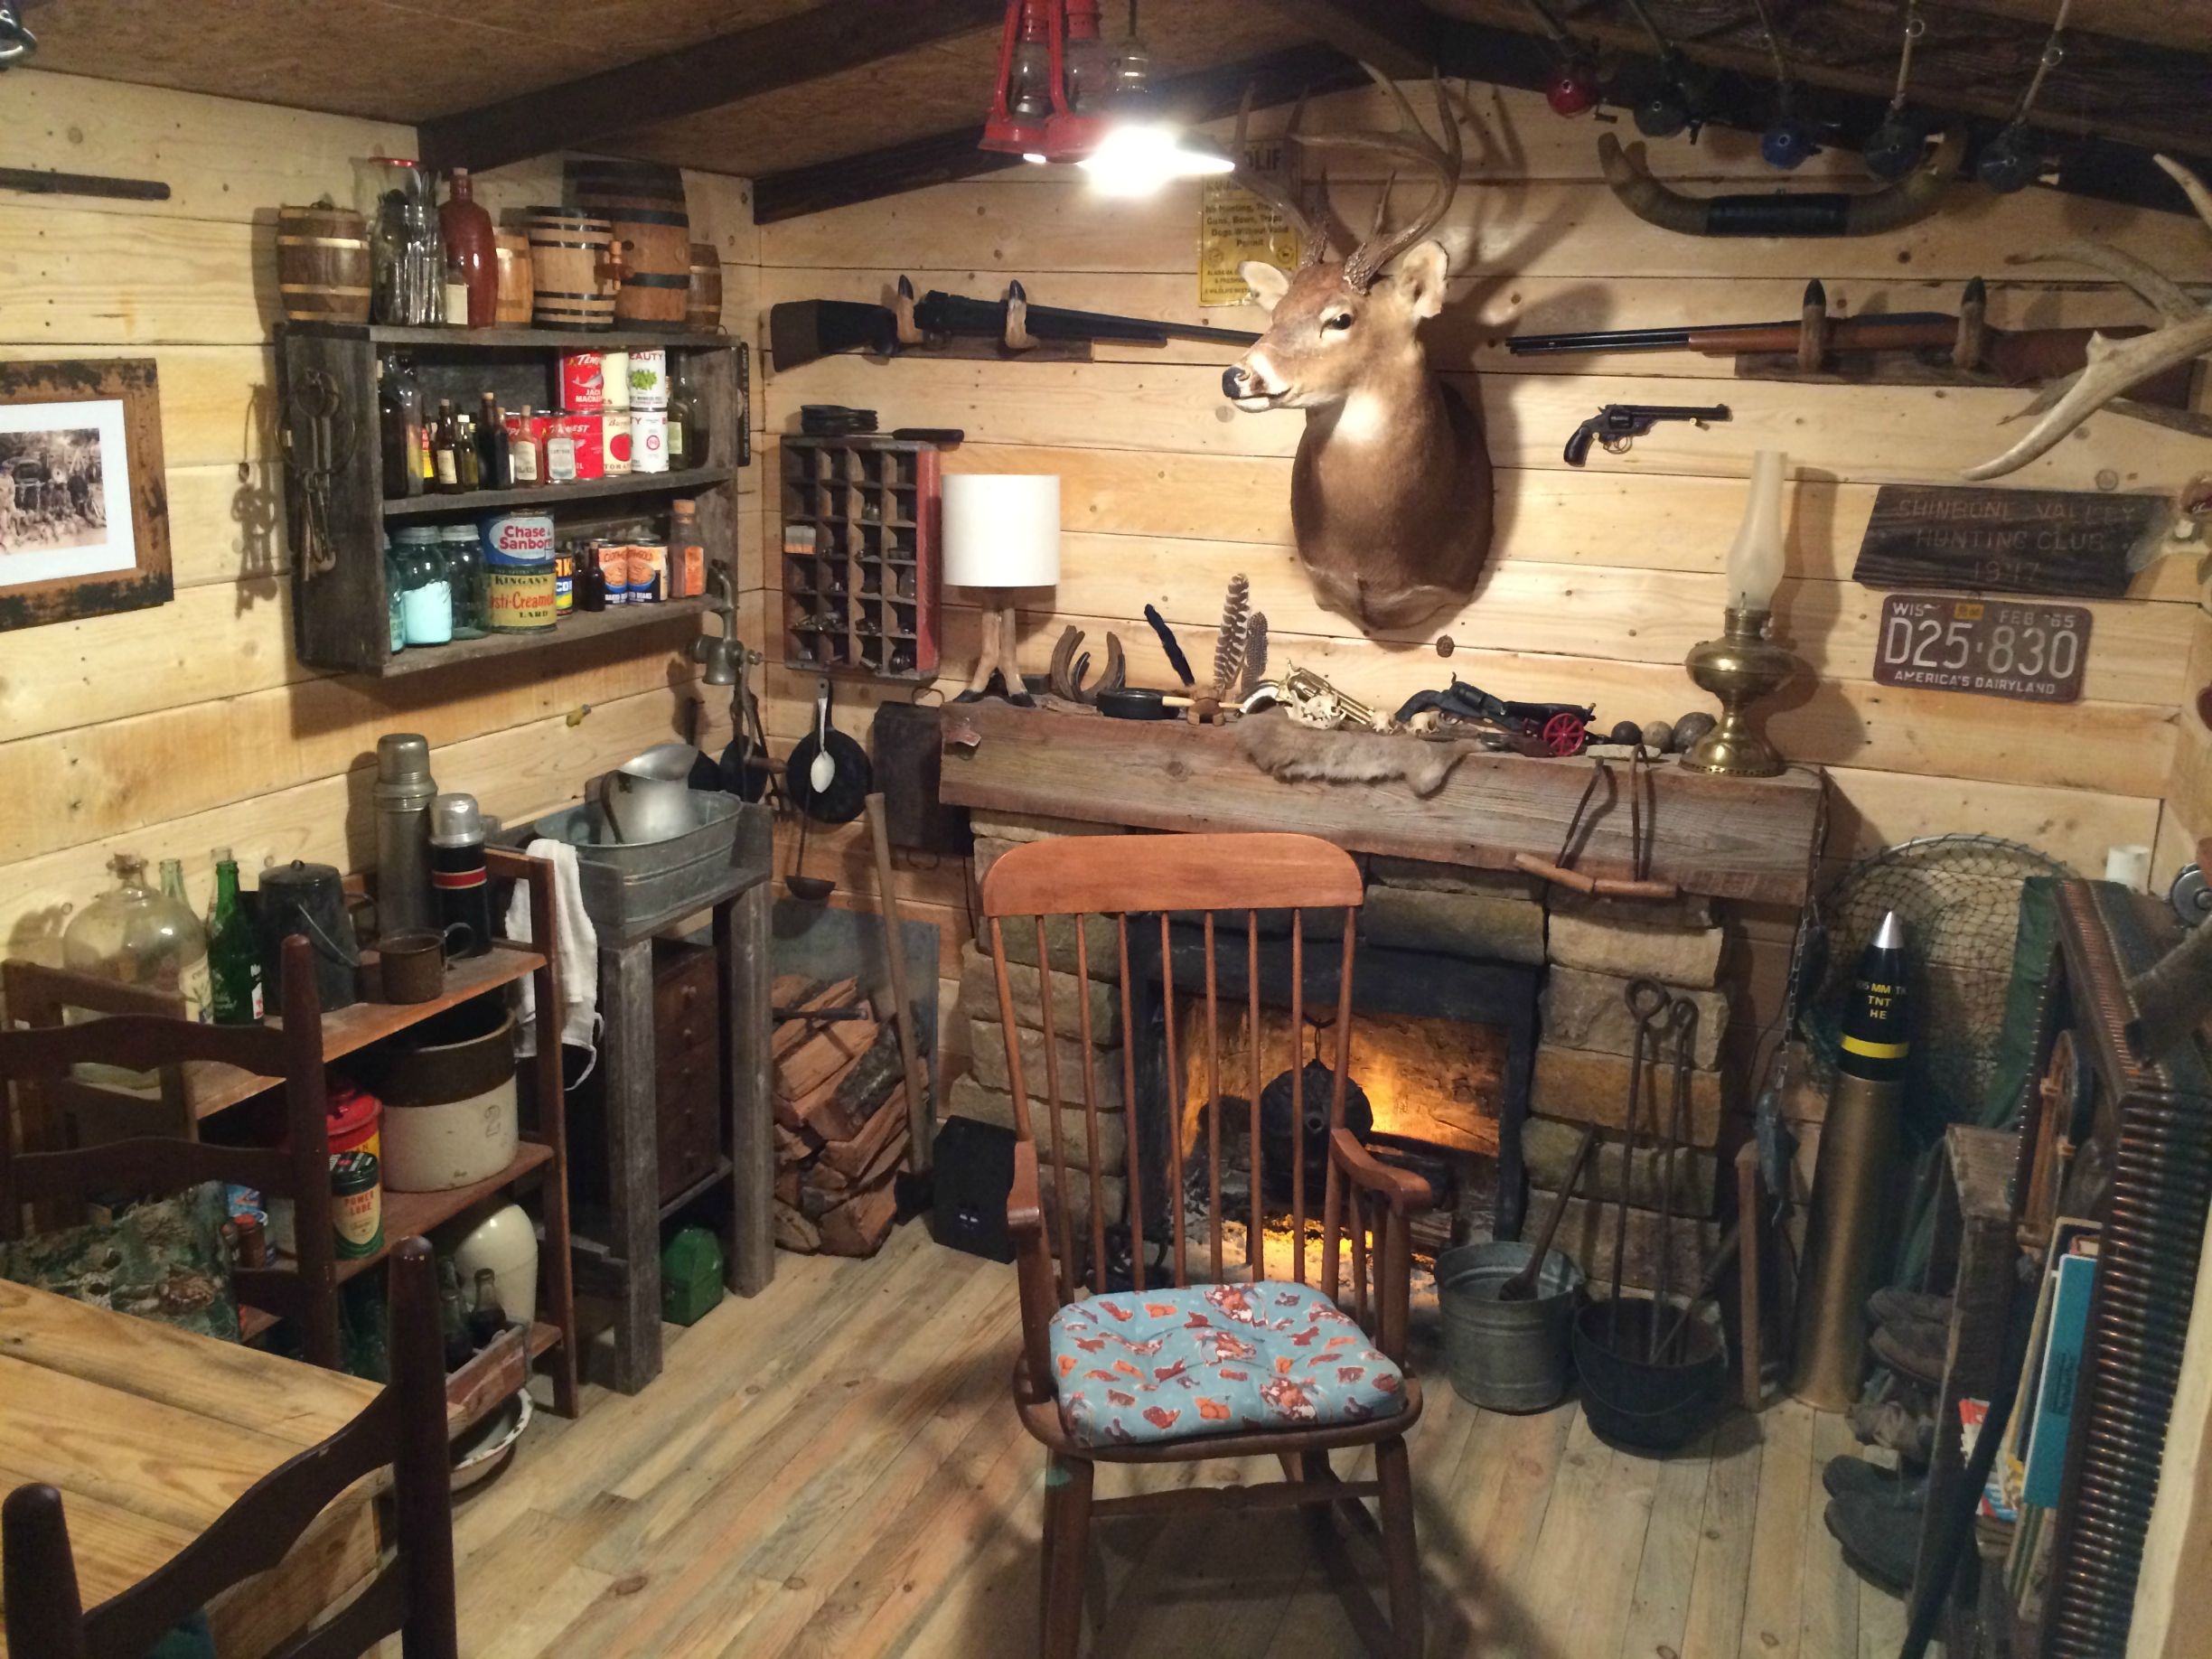 13 Rebellious Basement Man Cave Ideas Every Man Needs In His Home